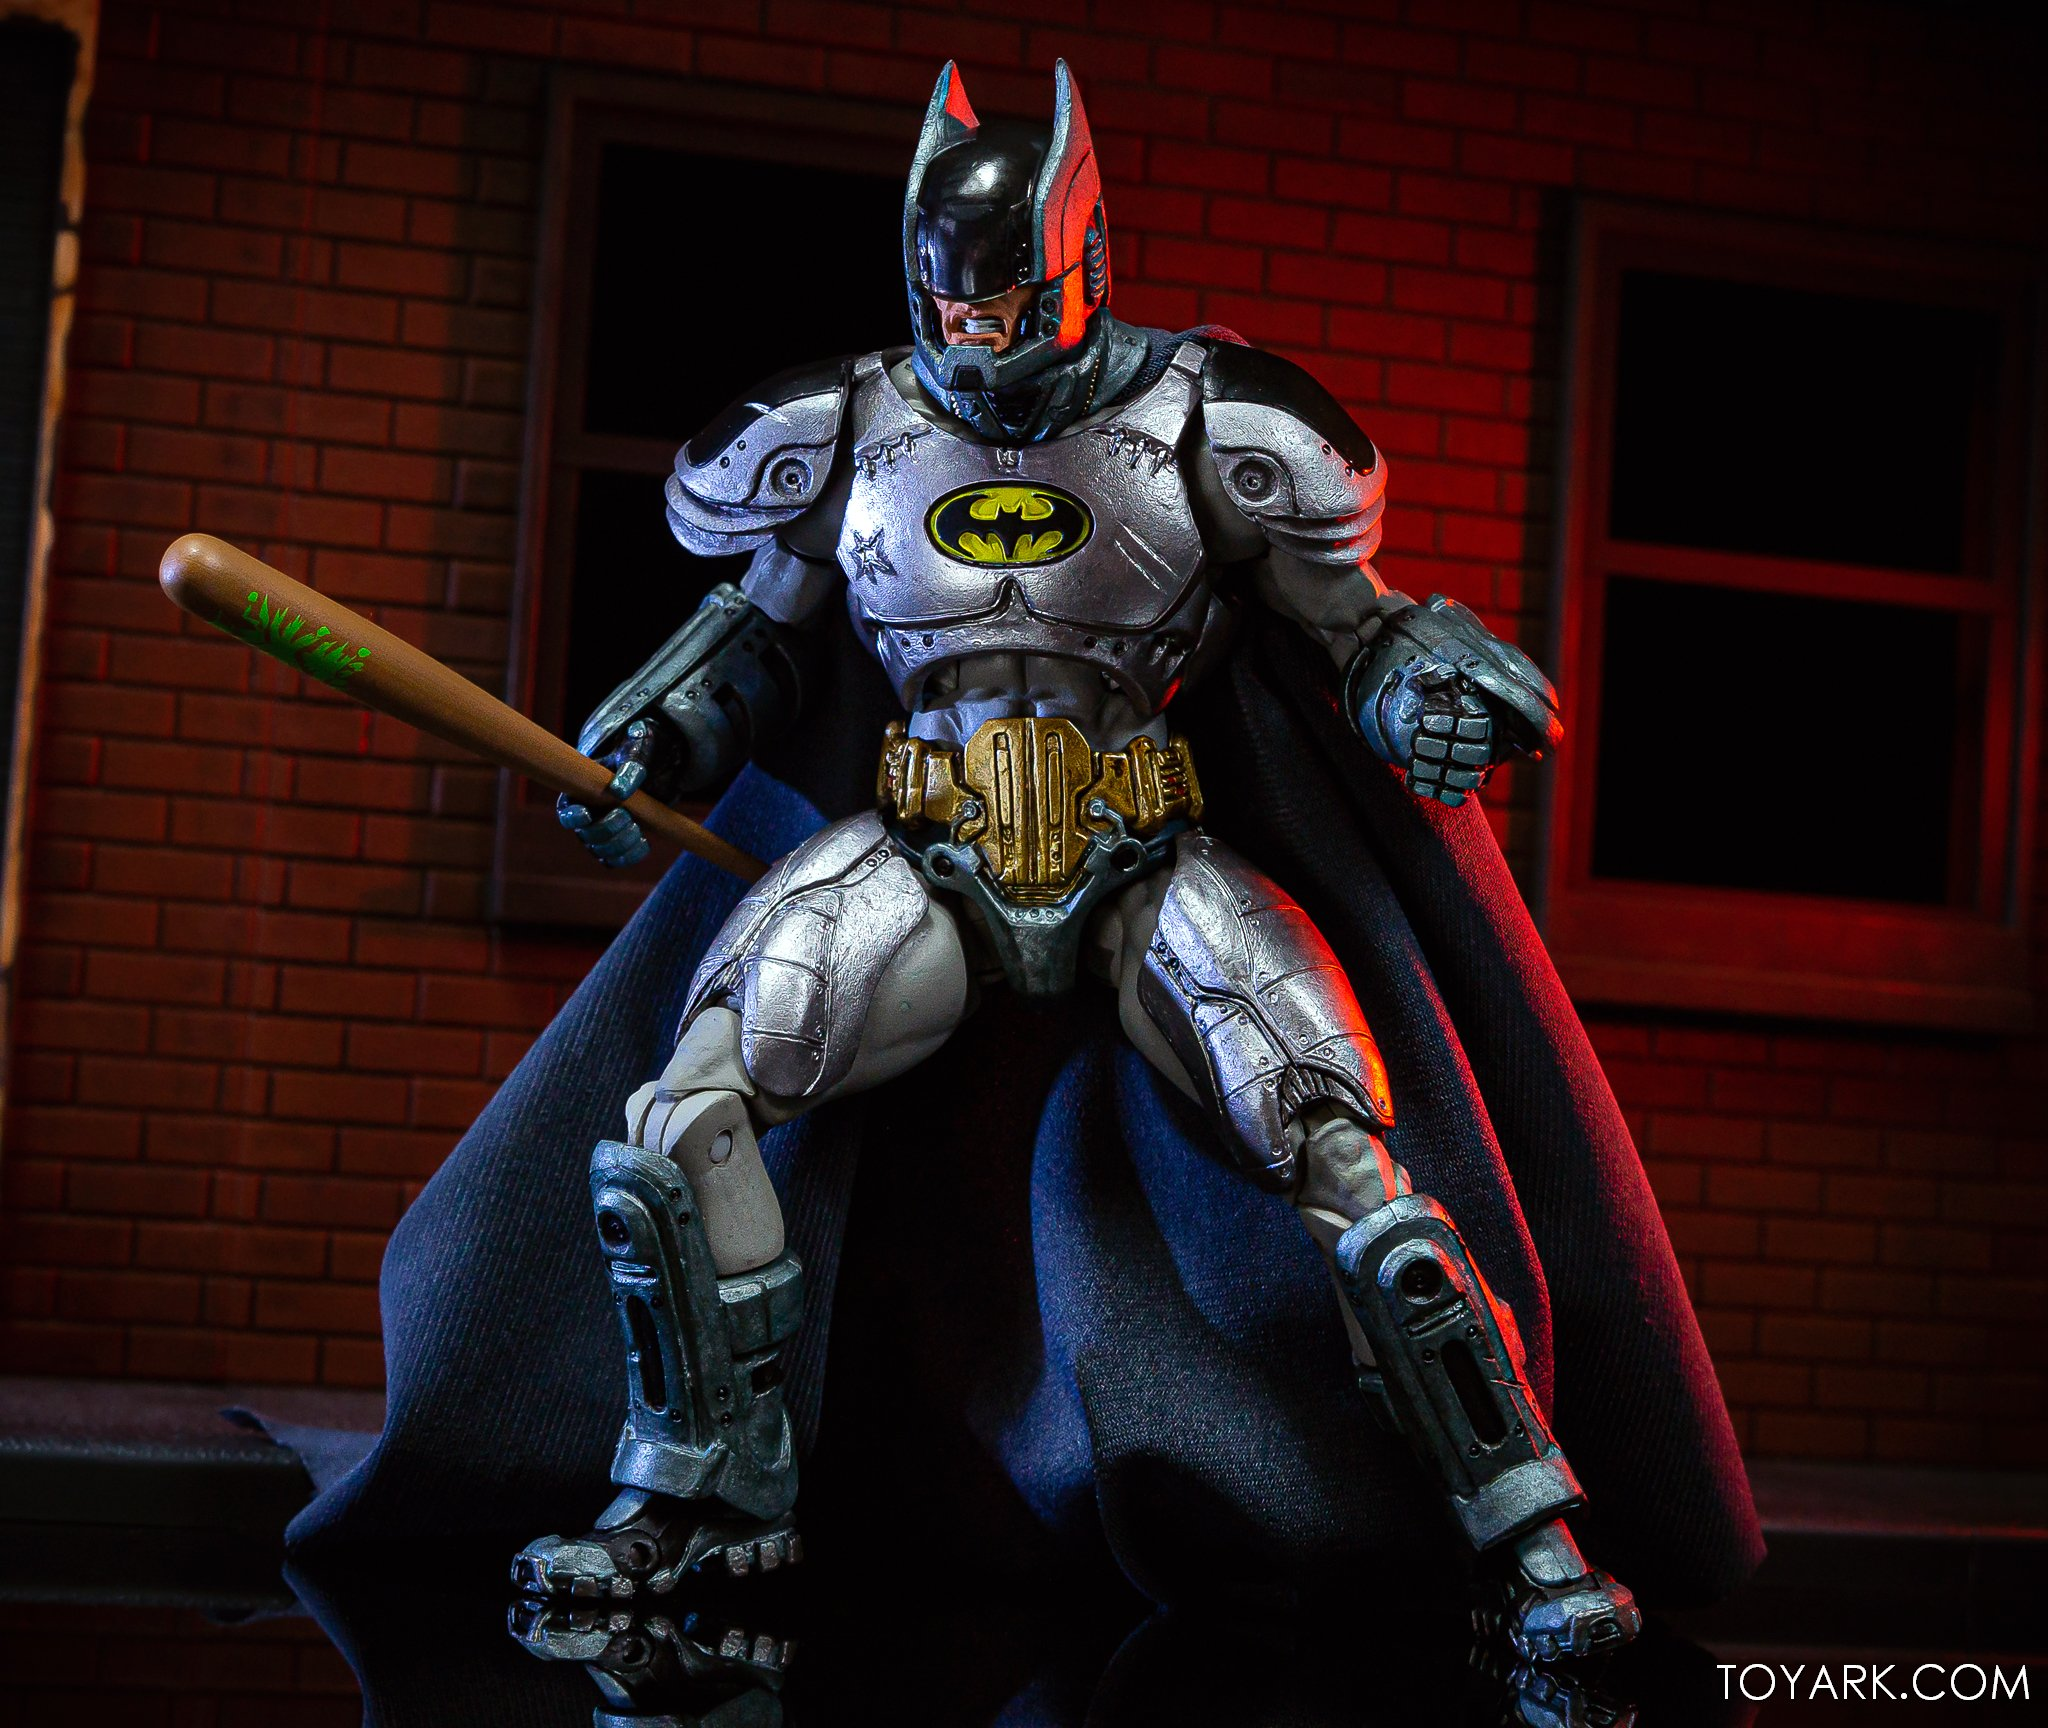 https://news.toyark.com/wp-content/uploads/sites/4/2019/09/Batman-vs-Predator-Set-020.jpg